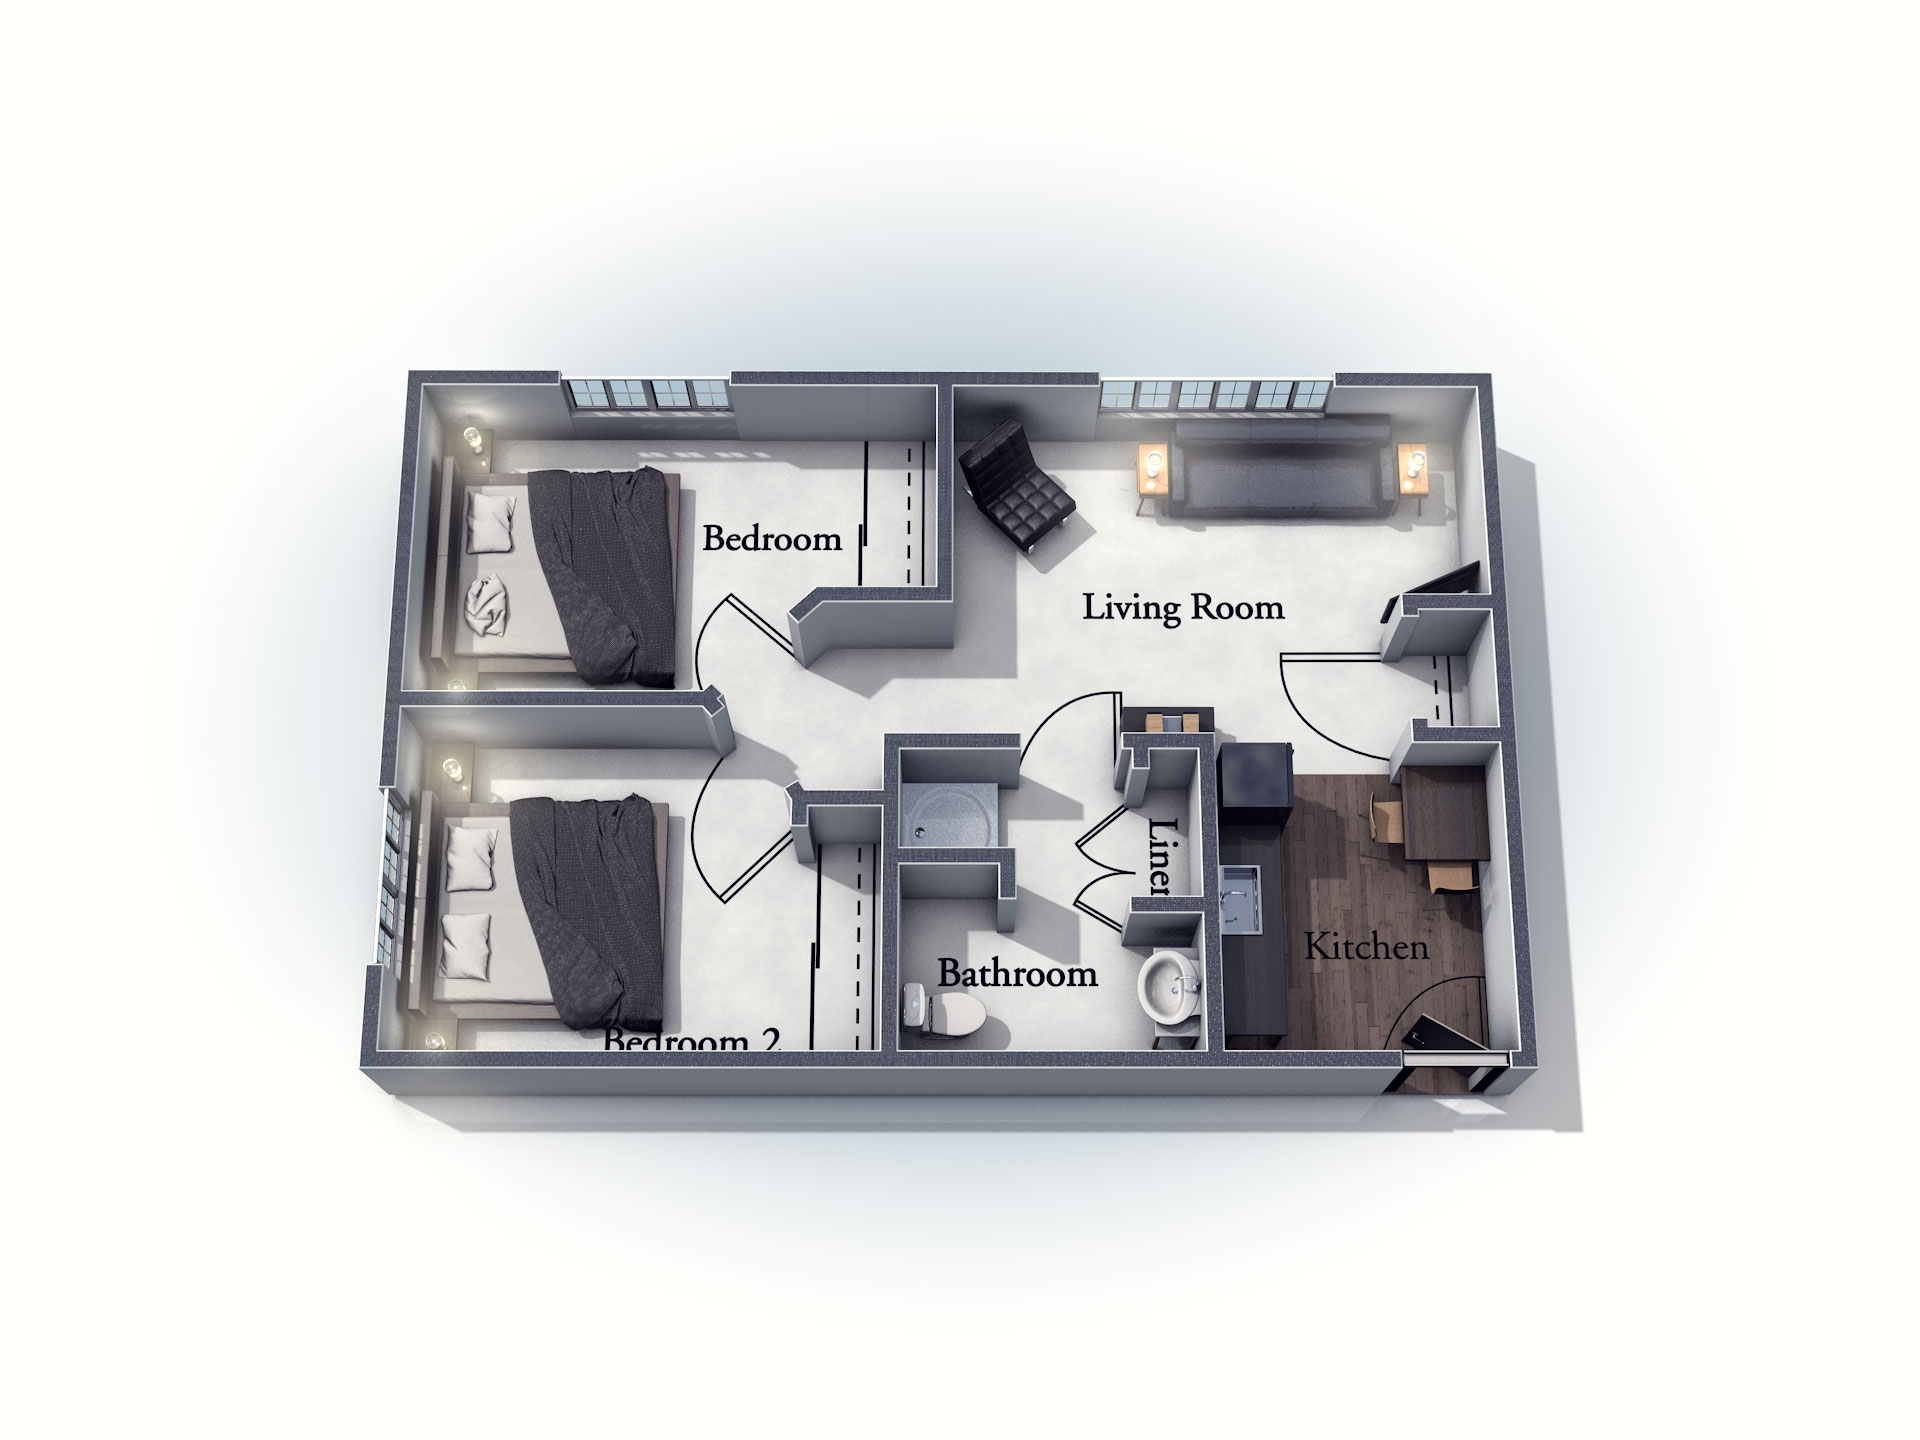 This 3D rendering of the Abberton living space shows an example of the floor plan layout. Please contact the Summit Pointe Senior Living Community for more information.